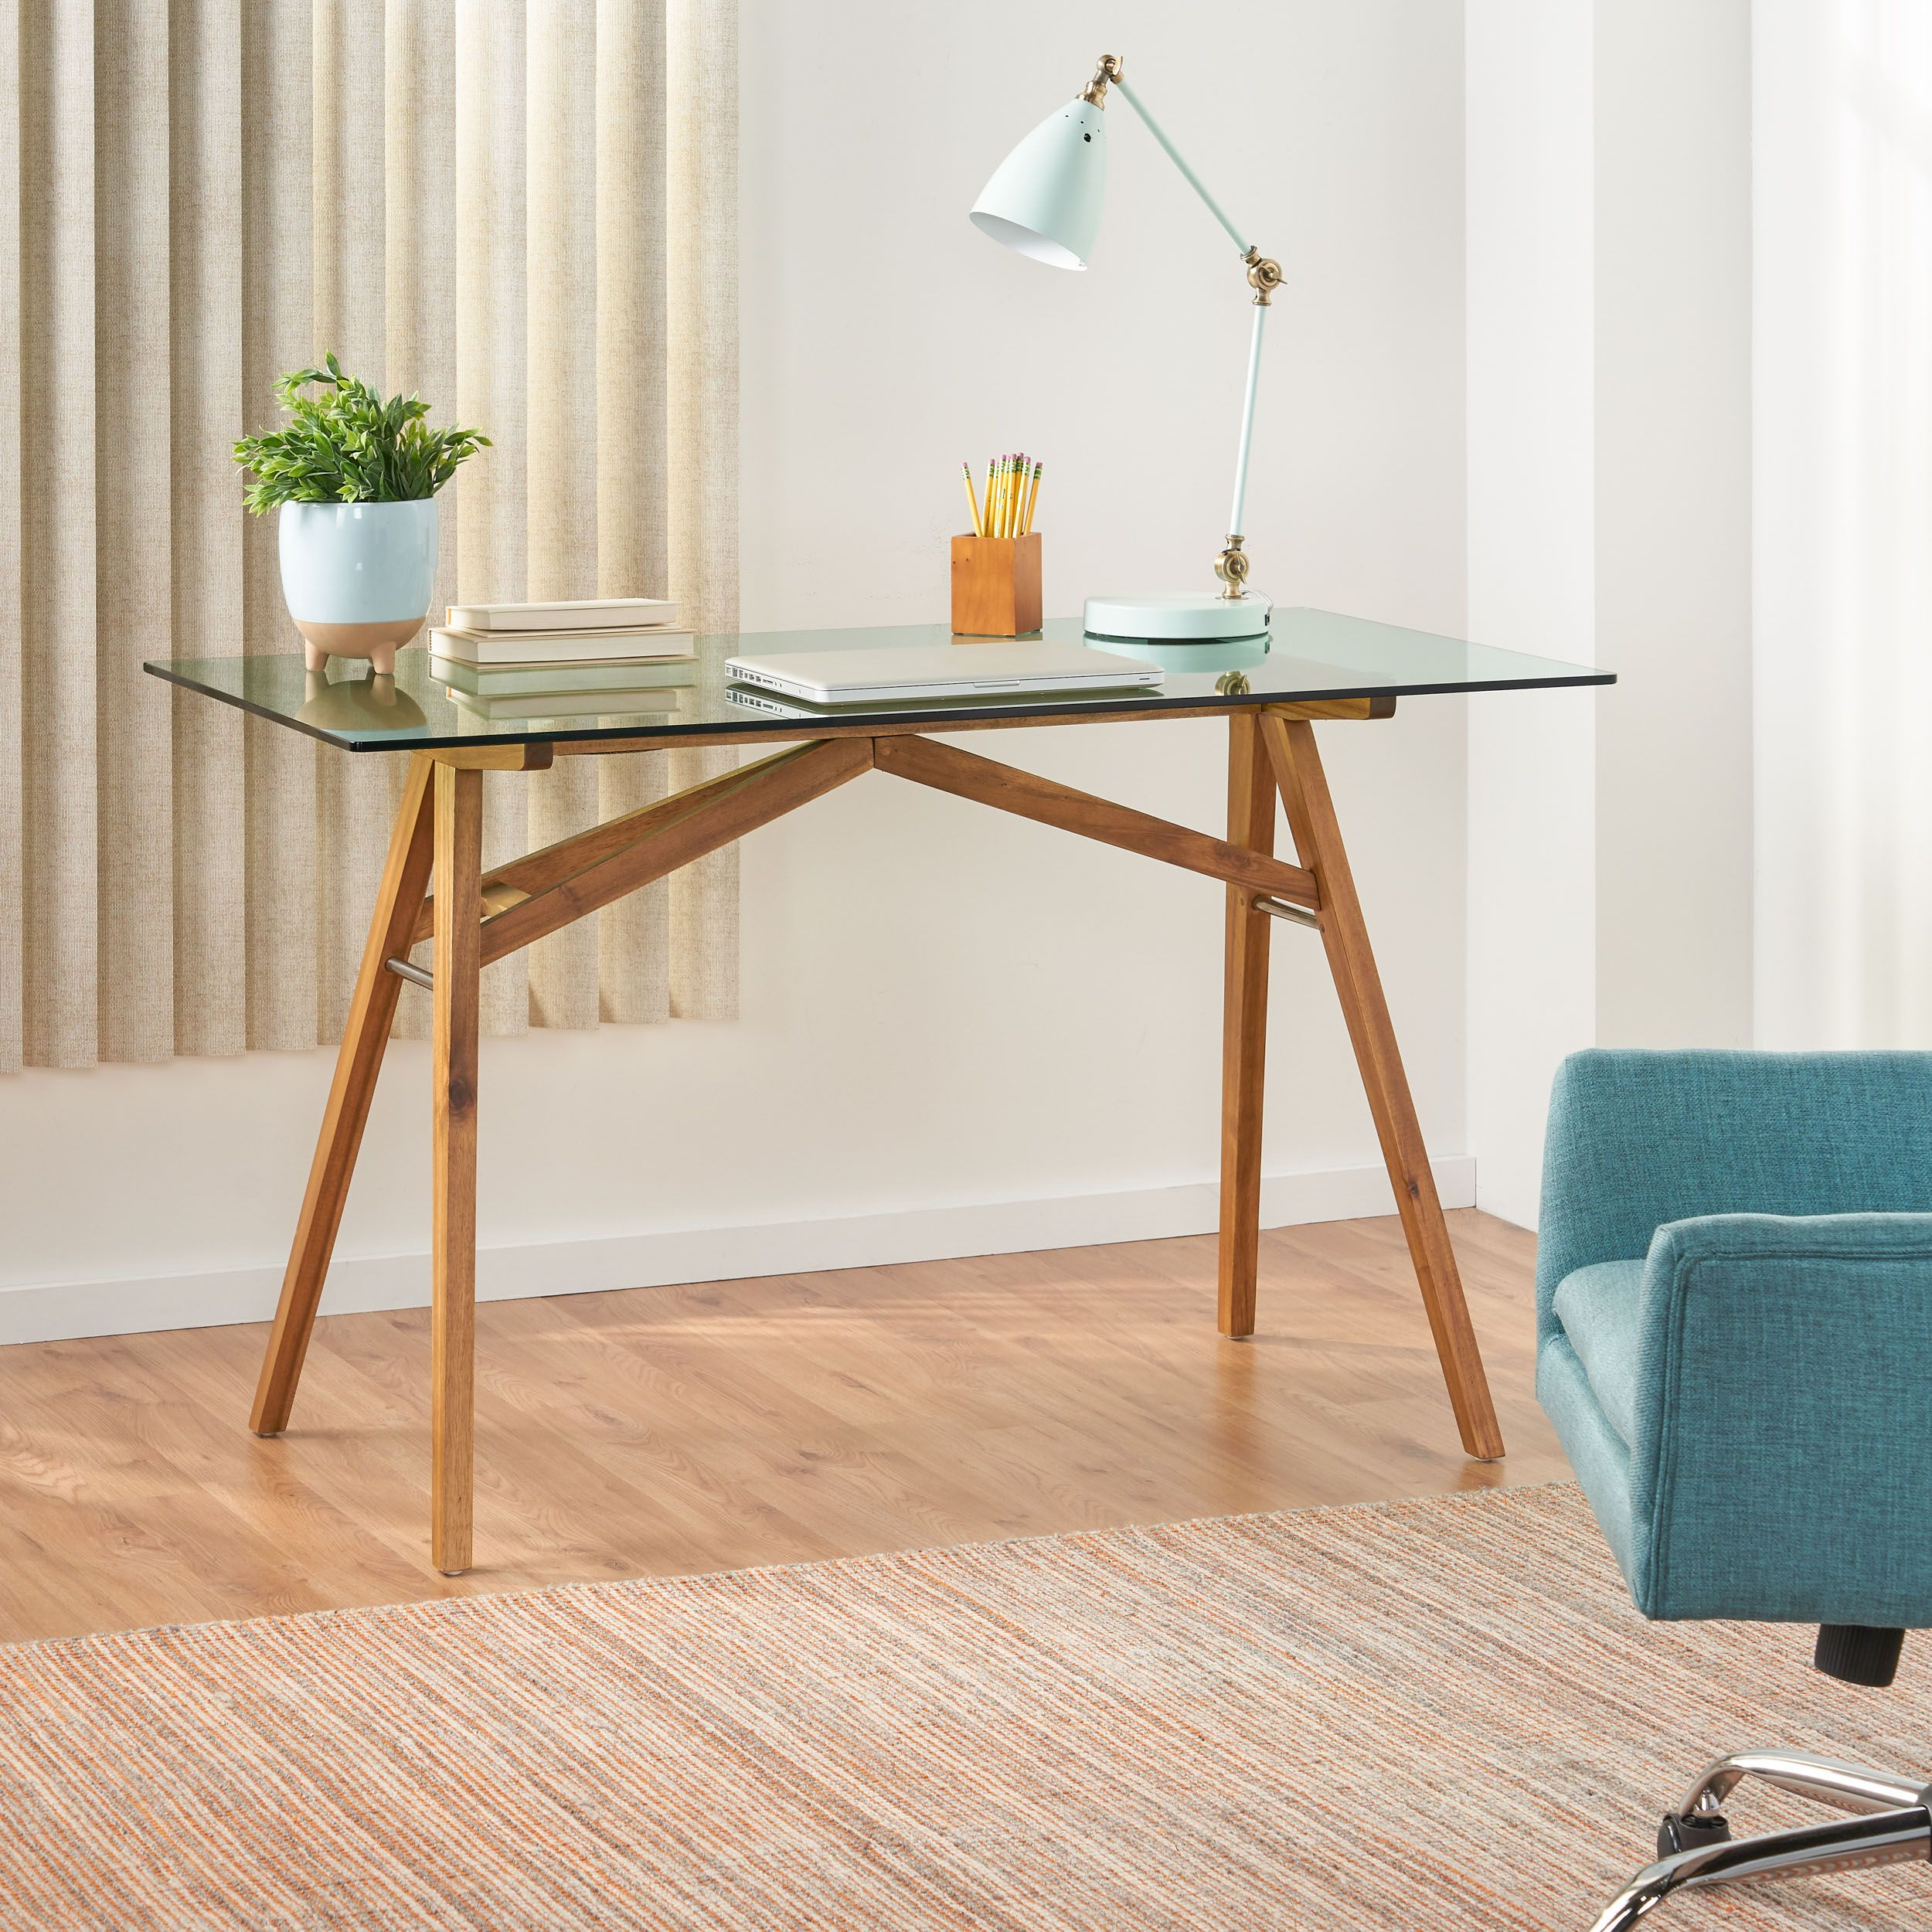 Camey Mid Century Acacia Wood Desk With Tempered Glass Top In 2020 Glass Desk Modern Wood Desk Acacia Wood Desk